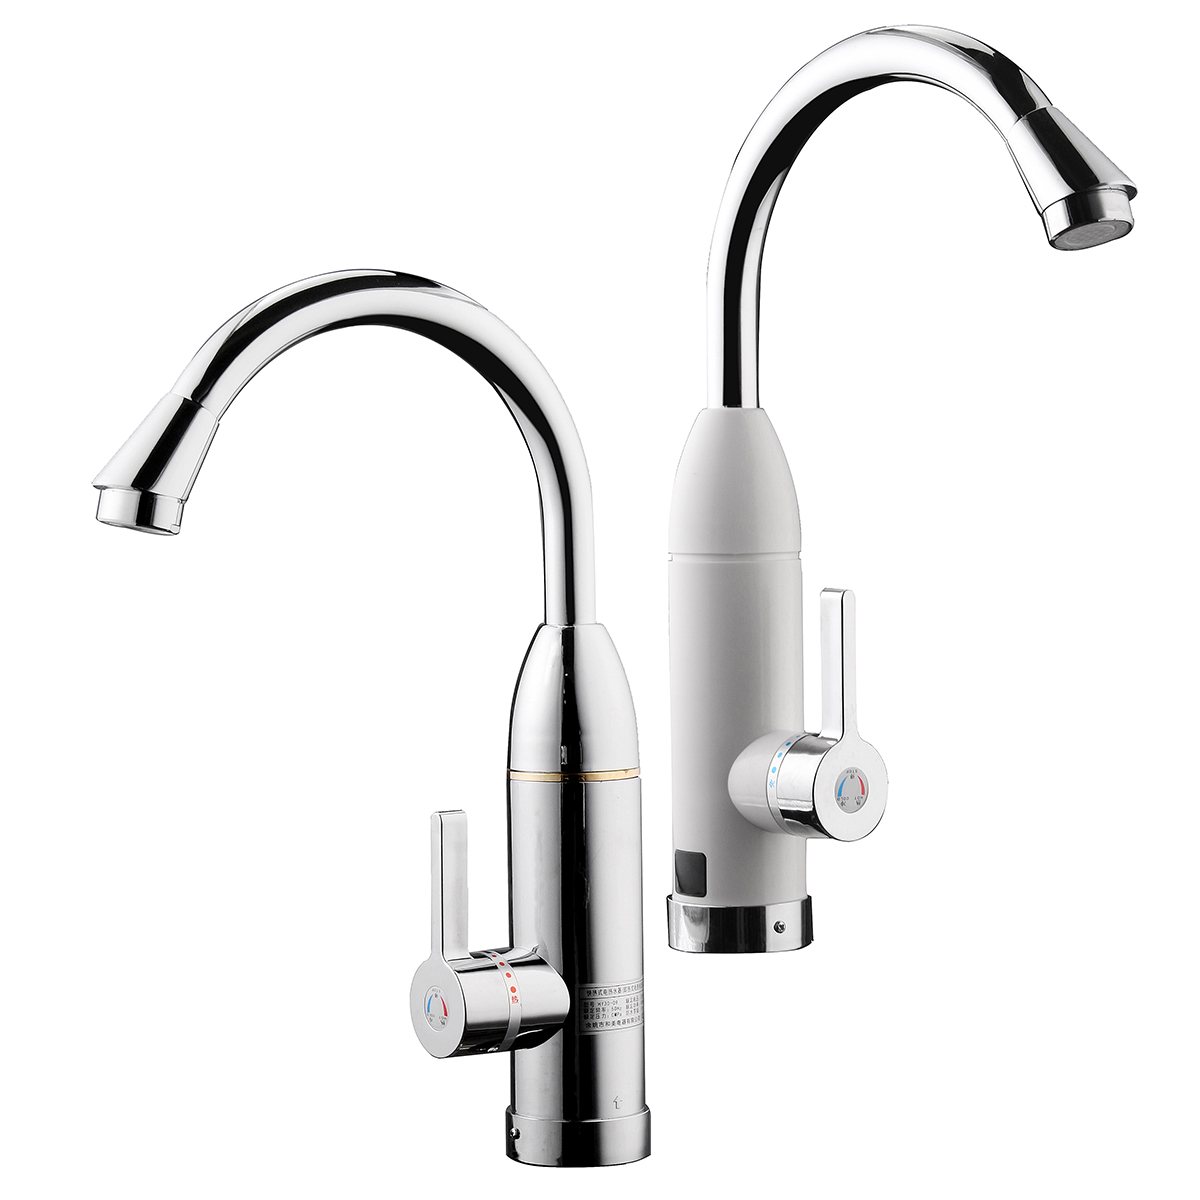 Newest Stainless Steel 220v 3000w Water Heater Faucet Kitchen Electric Water Heating Tap Instant Hot Faucet Heaters